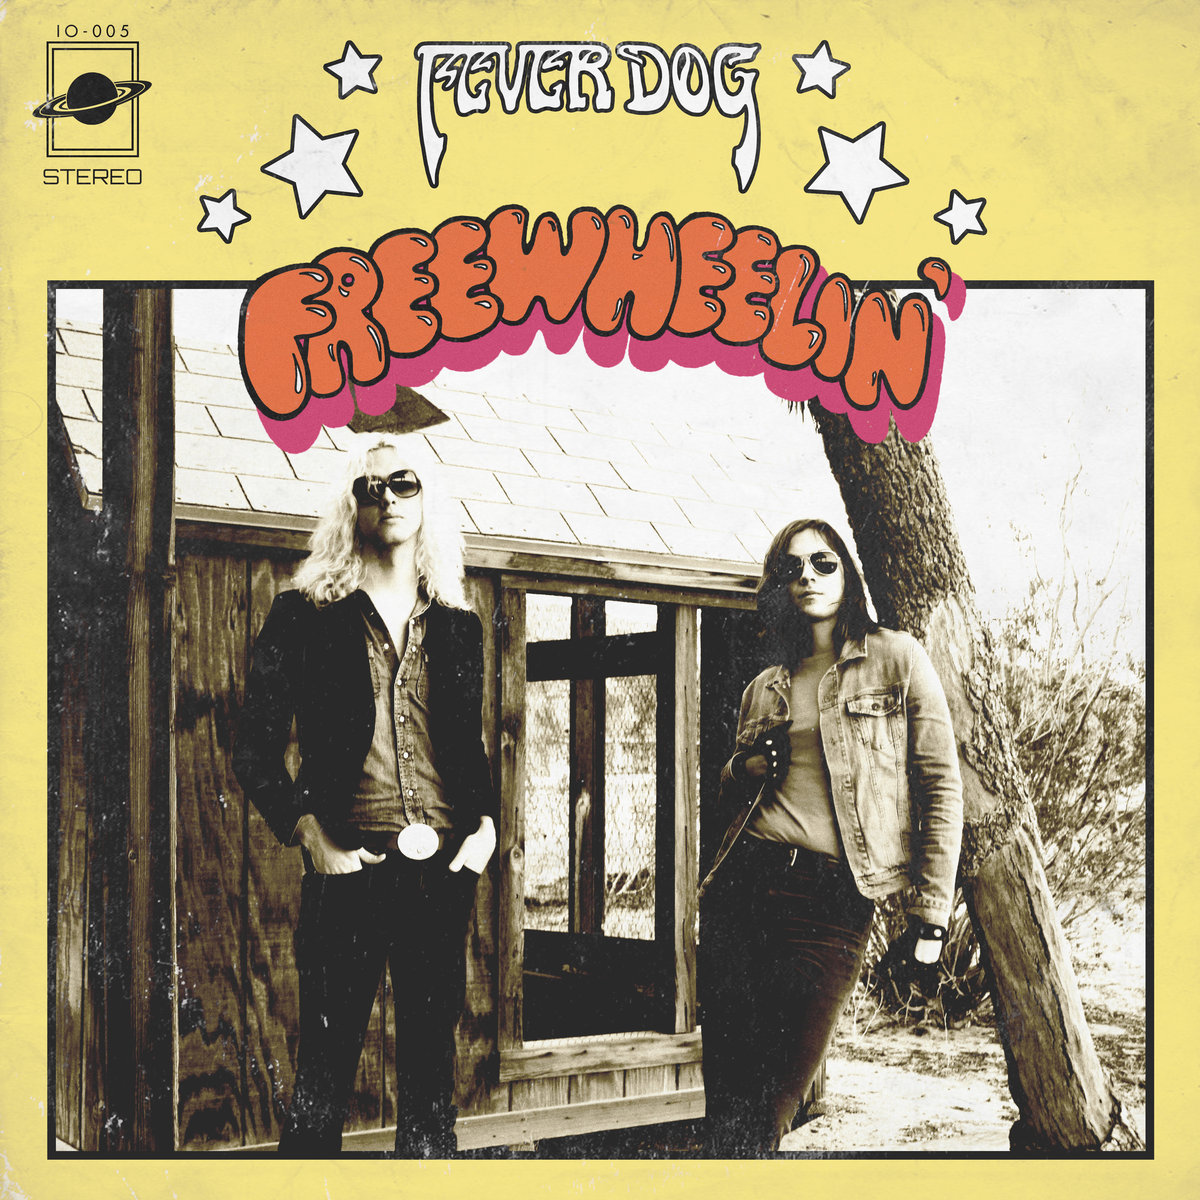 fever dog freewheelin